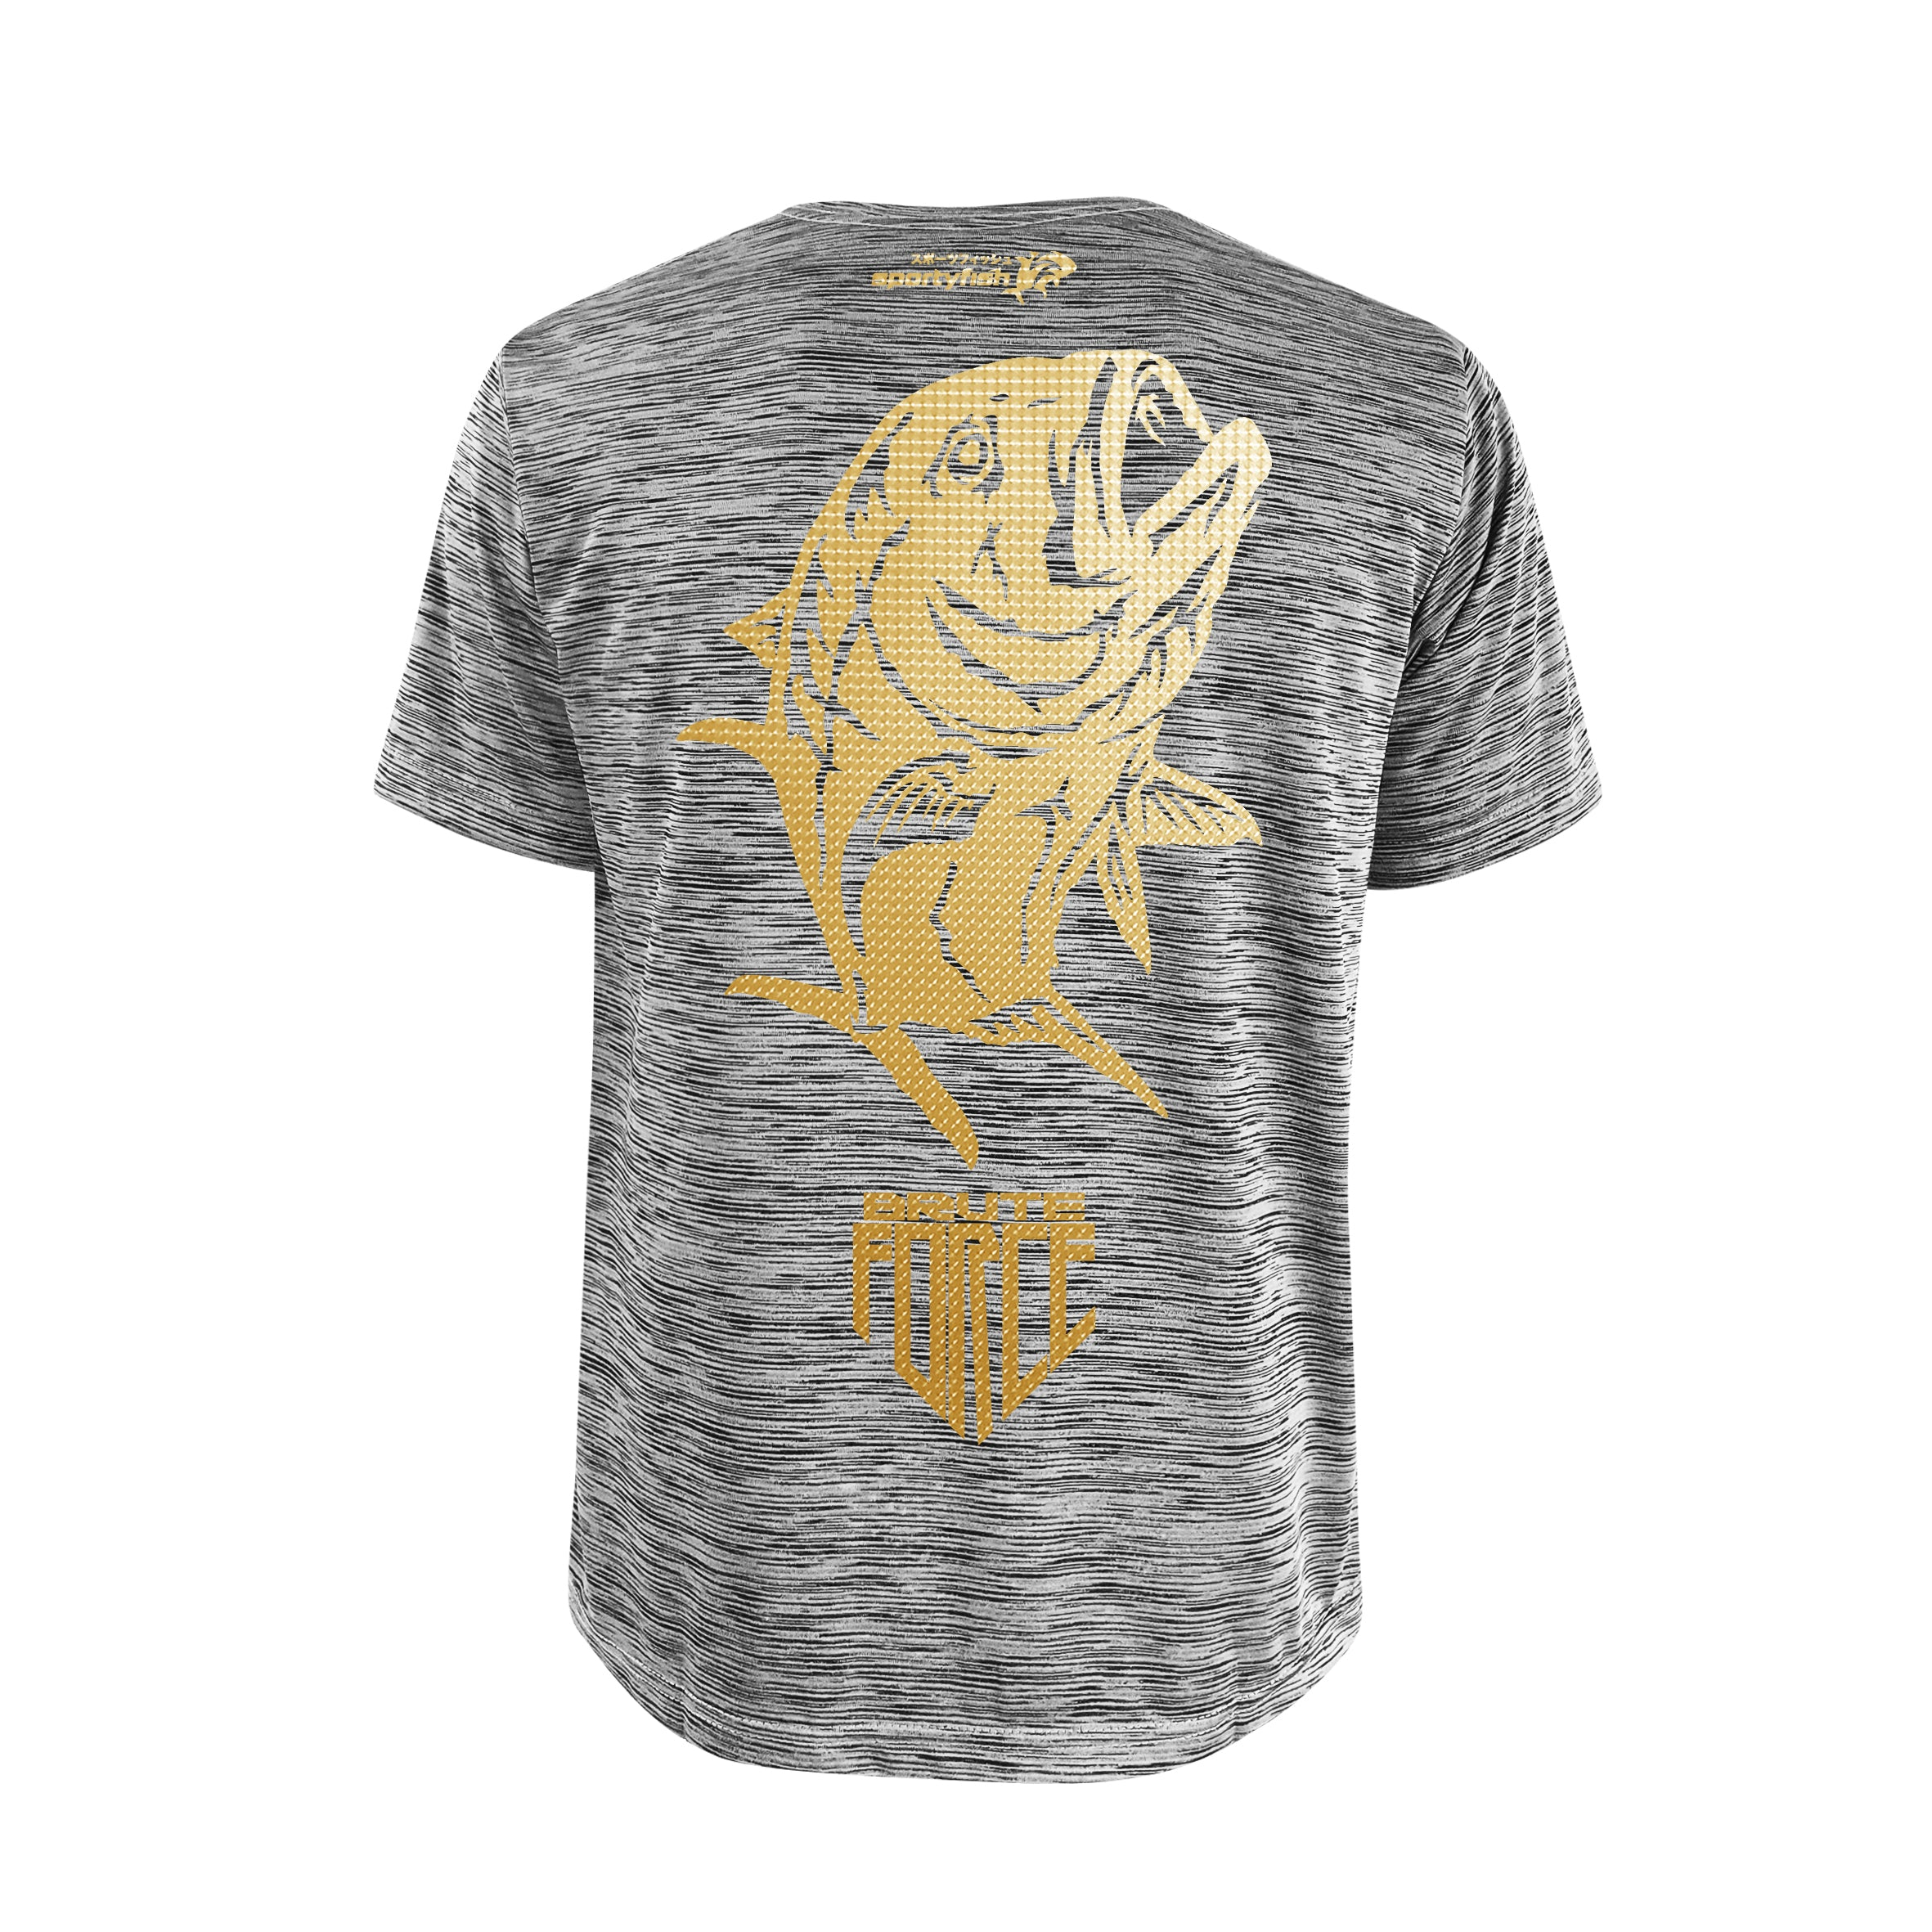 SportyFish Shield Series Grey T-shirt(back view) Gold Print: Giant Trevally